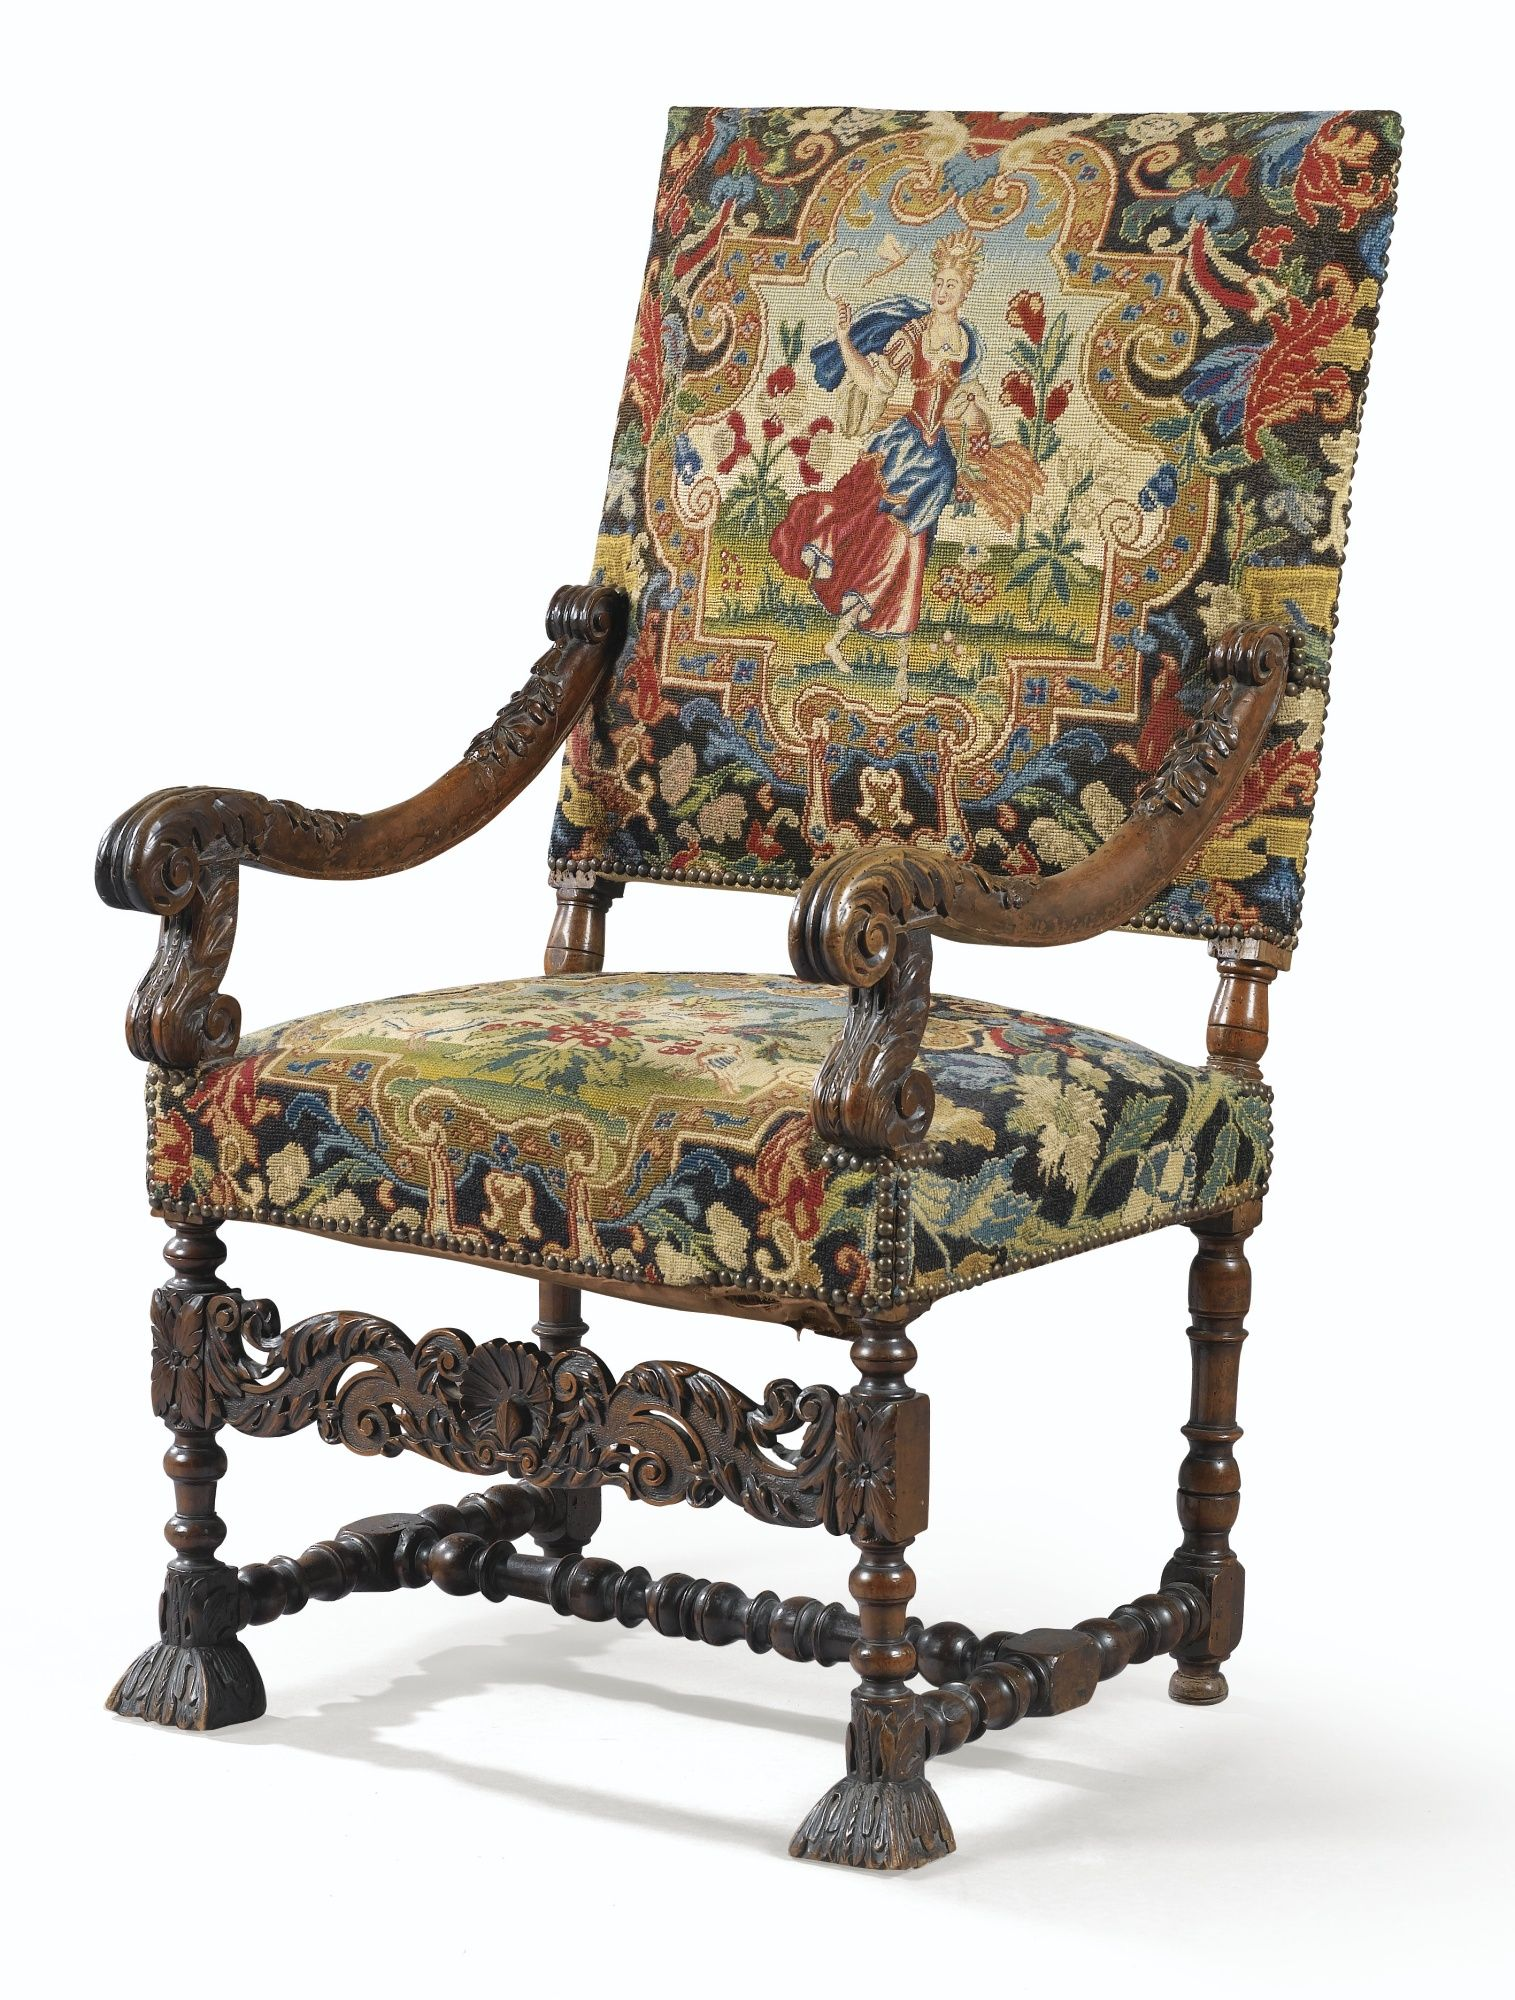 Fauteuil covered in tapestry ca 1680 french school - Table basse louis xiv ...